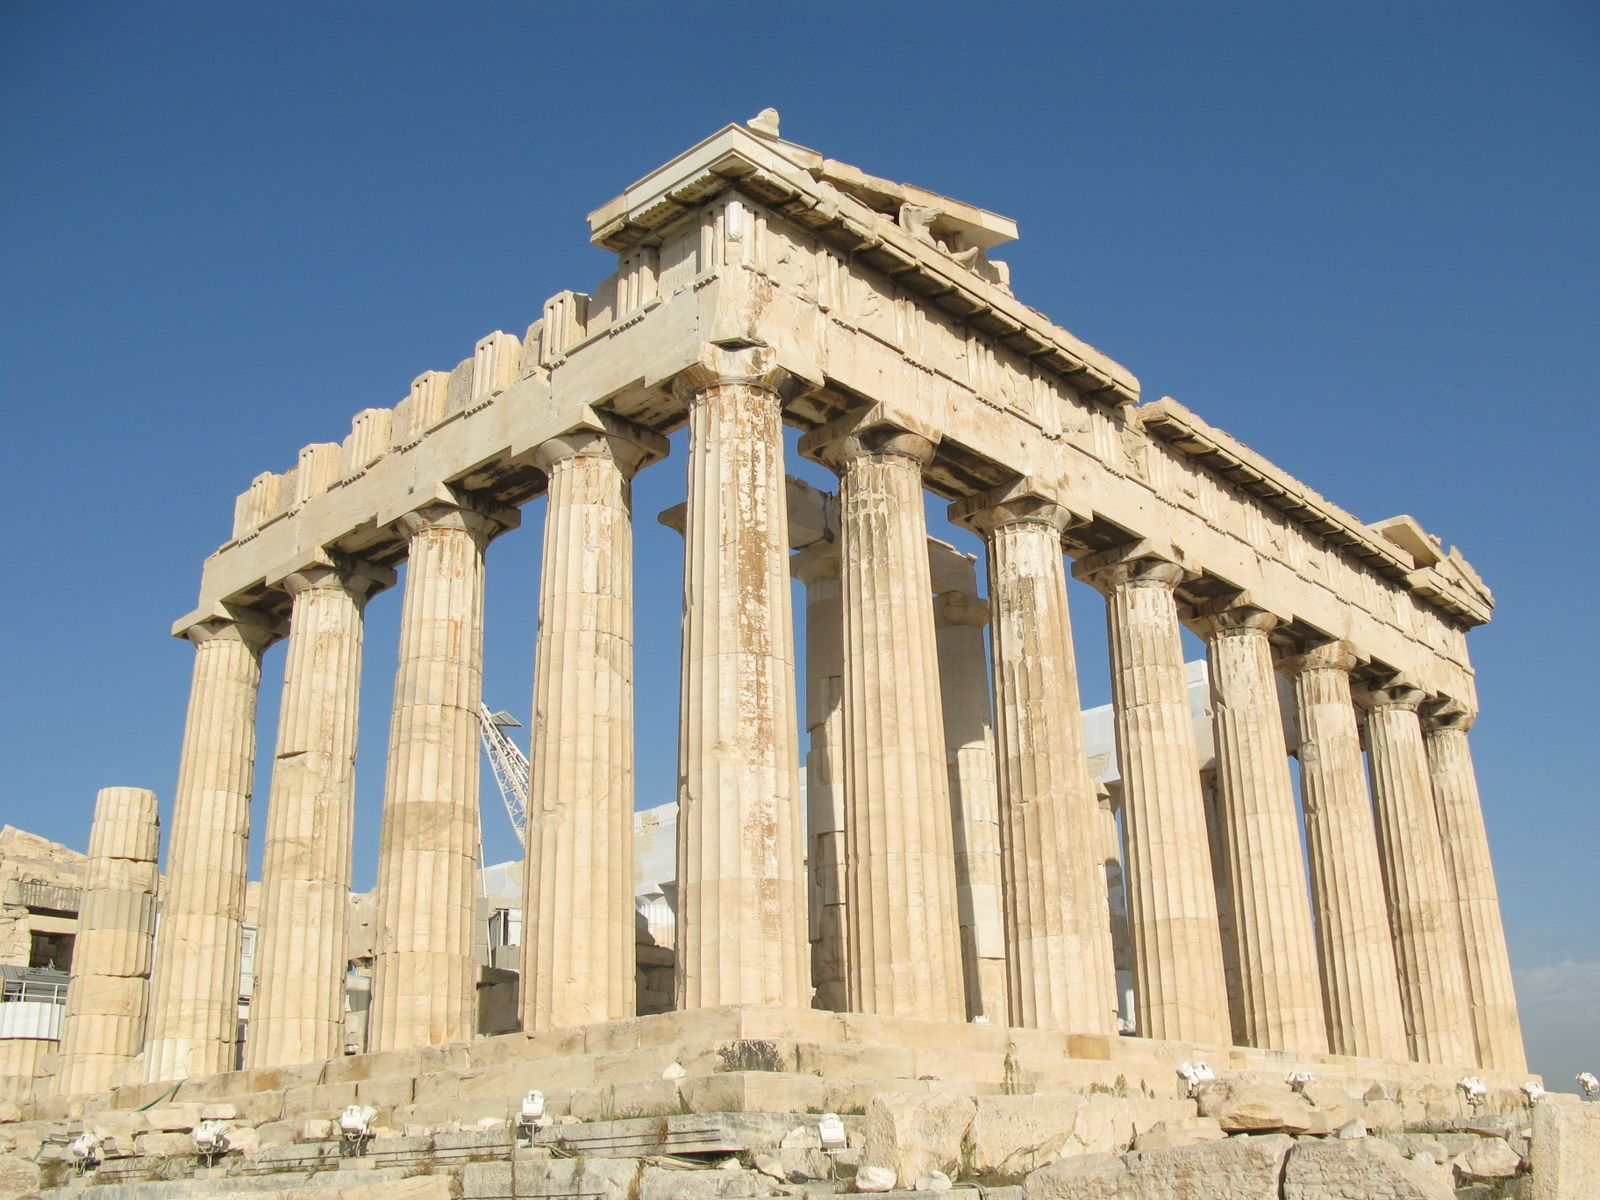 an analysis of the ancient building of the parthenon on the acropolis of athens The word acropolis derives from the greek words meaning upper city  the  acropolis of athens is an ancient citadel with some remains of ancient  the  parthenon, an excellent example of the doric order of architecture, was.